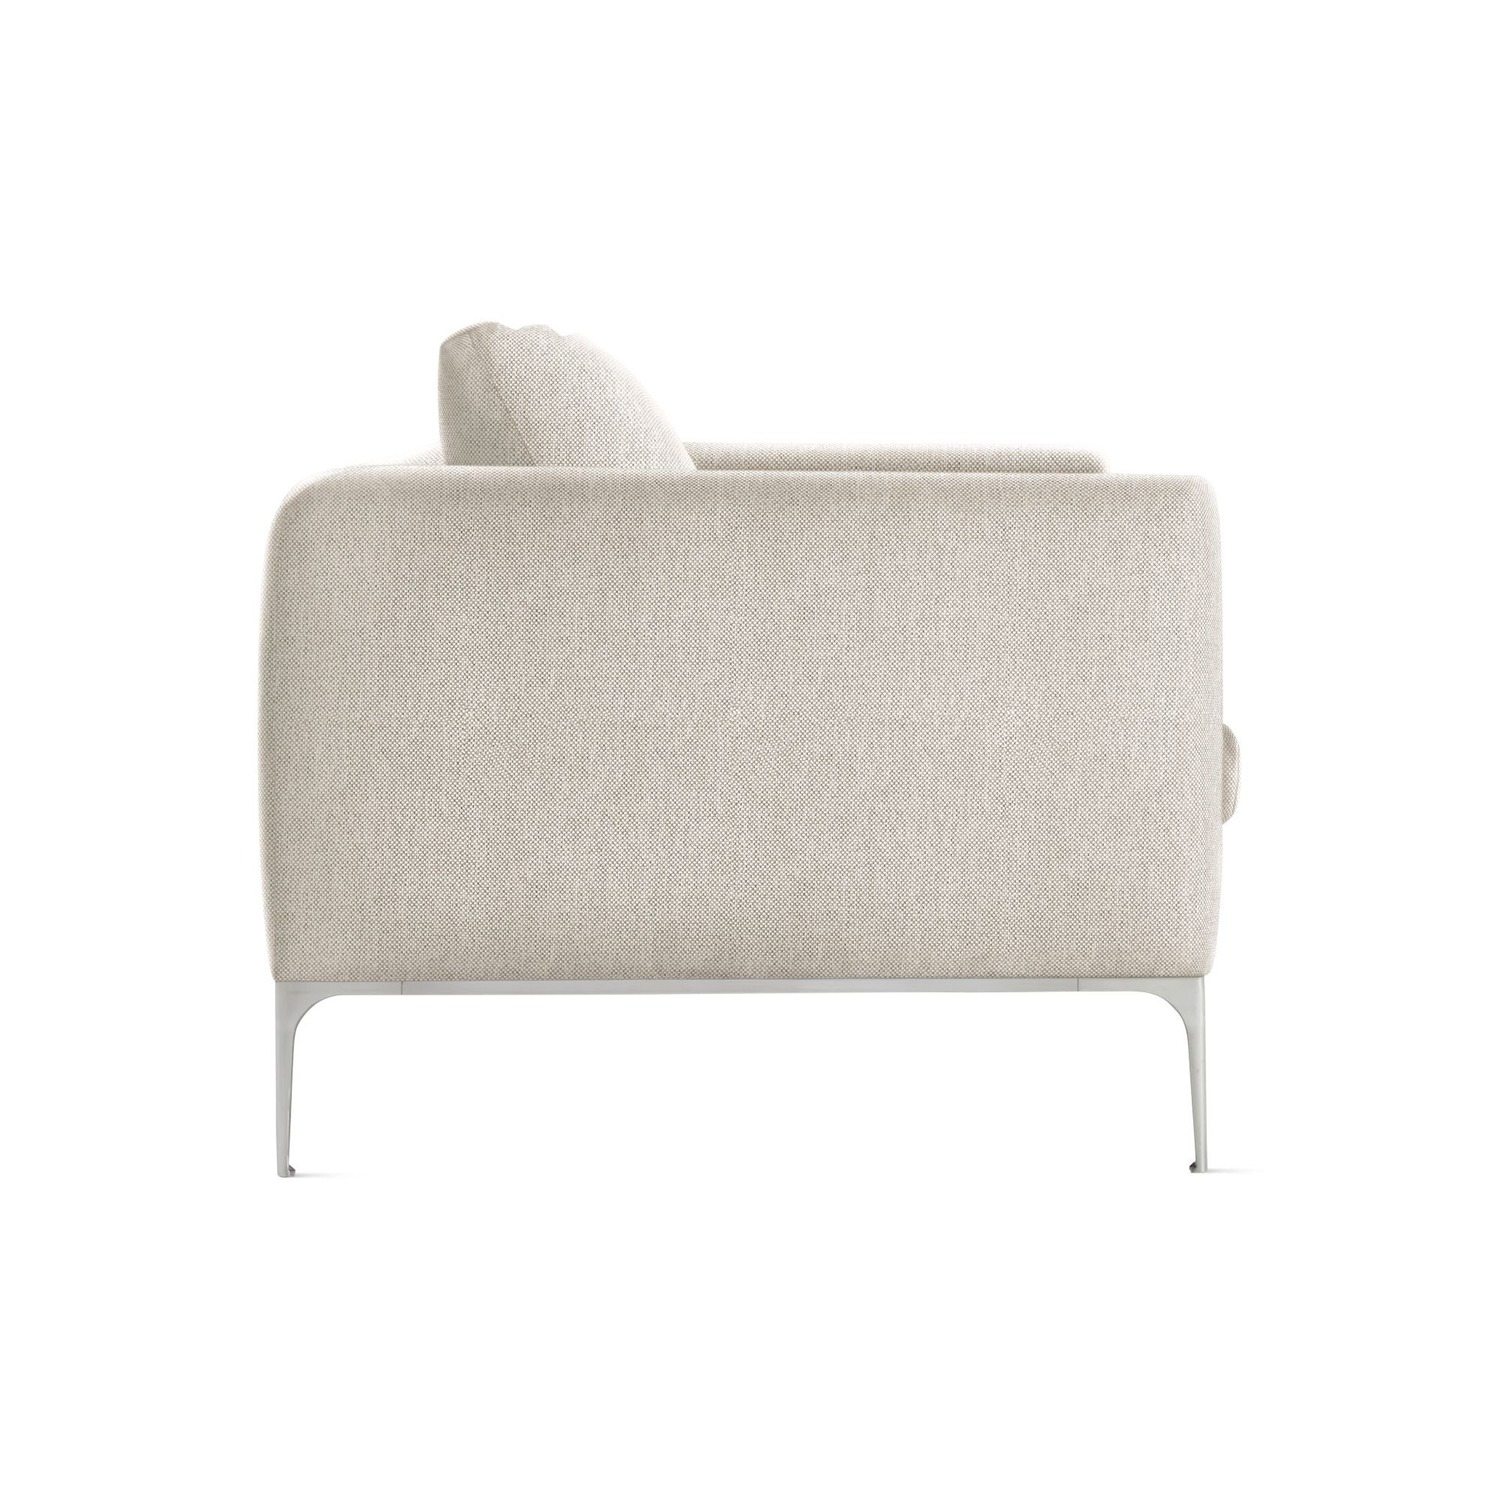 Beautiful DWR Couch - image-3